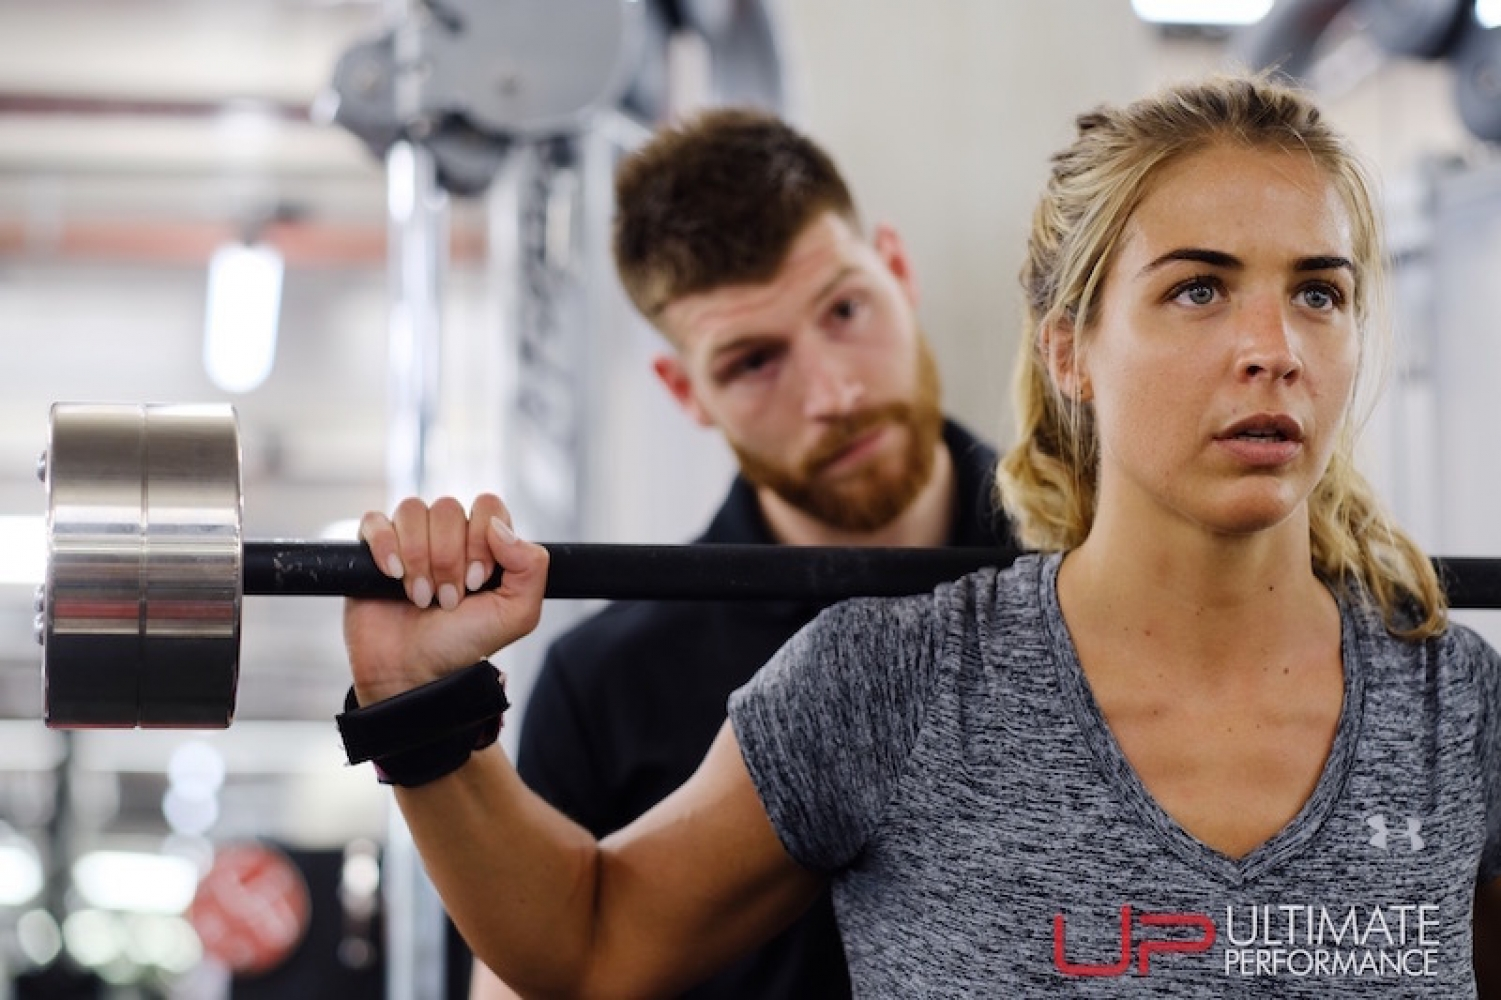 Gemma Atkinson Ultimate Performance Xyz Barbell